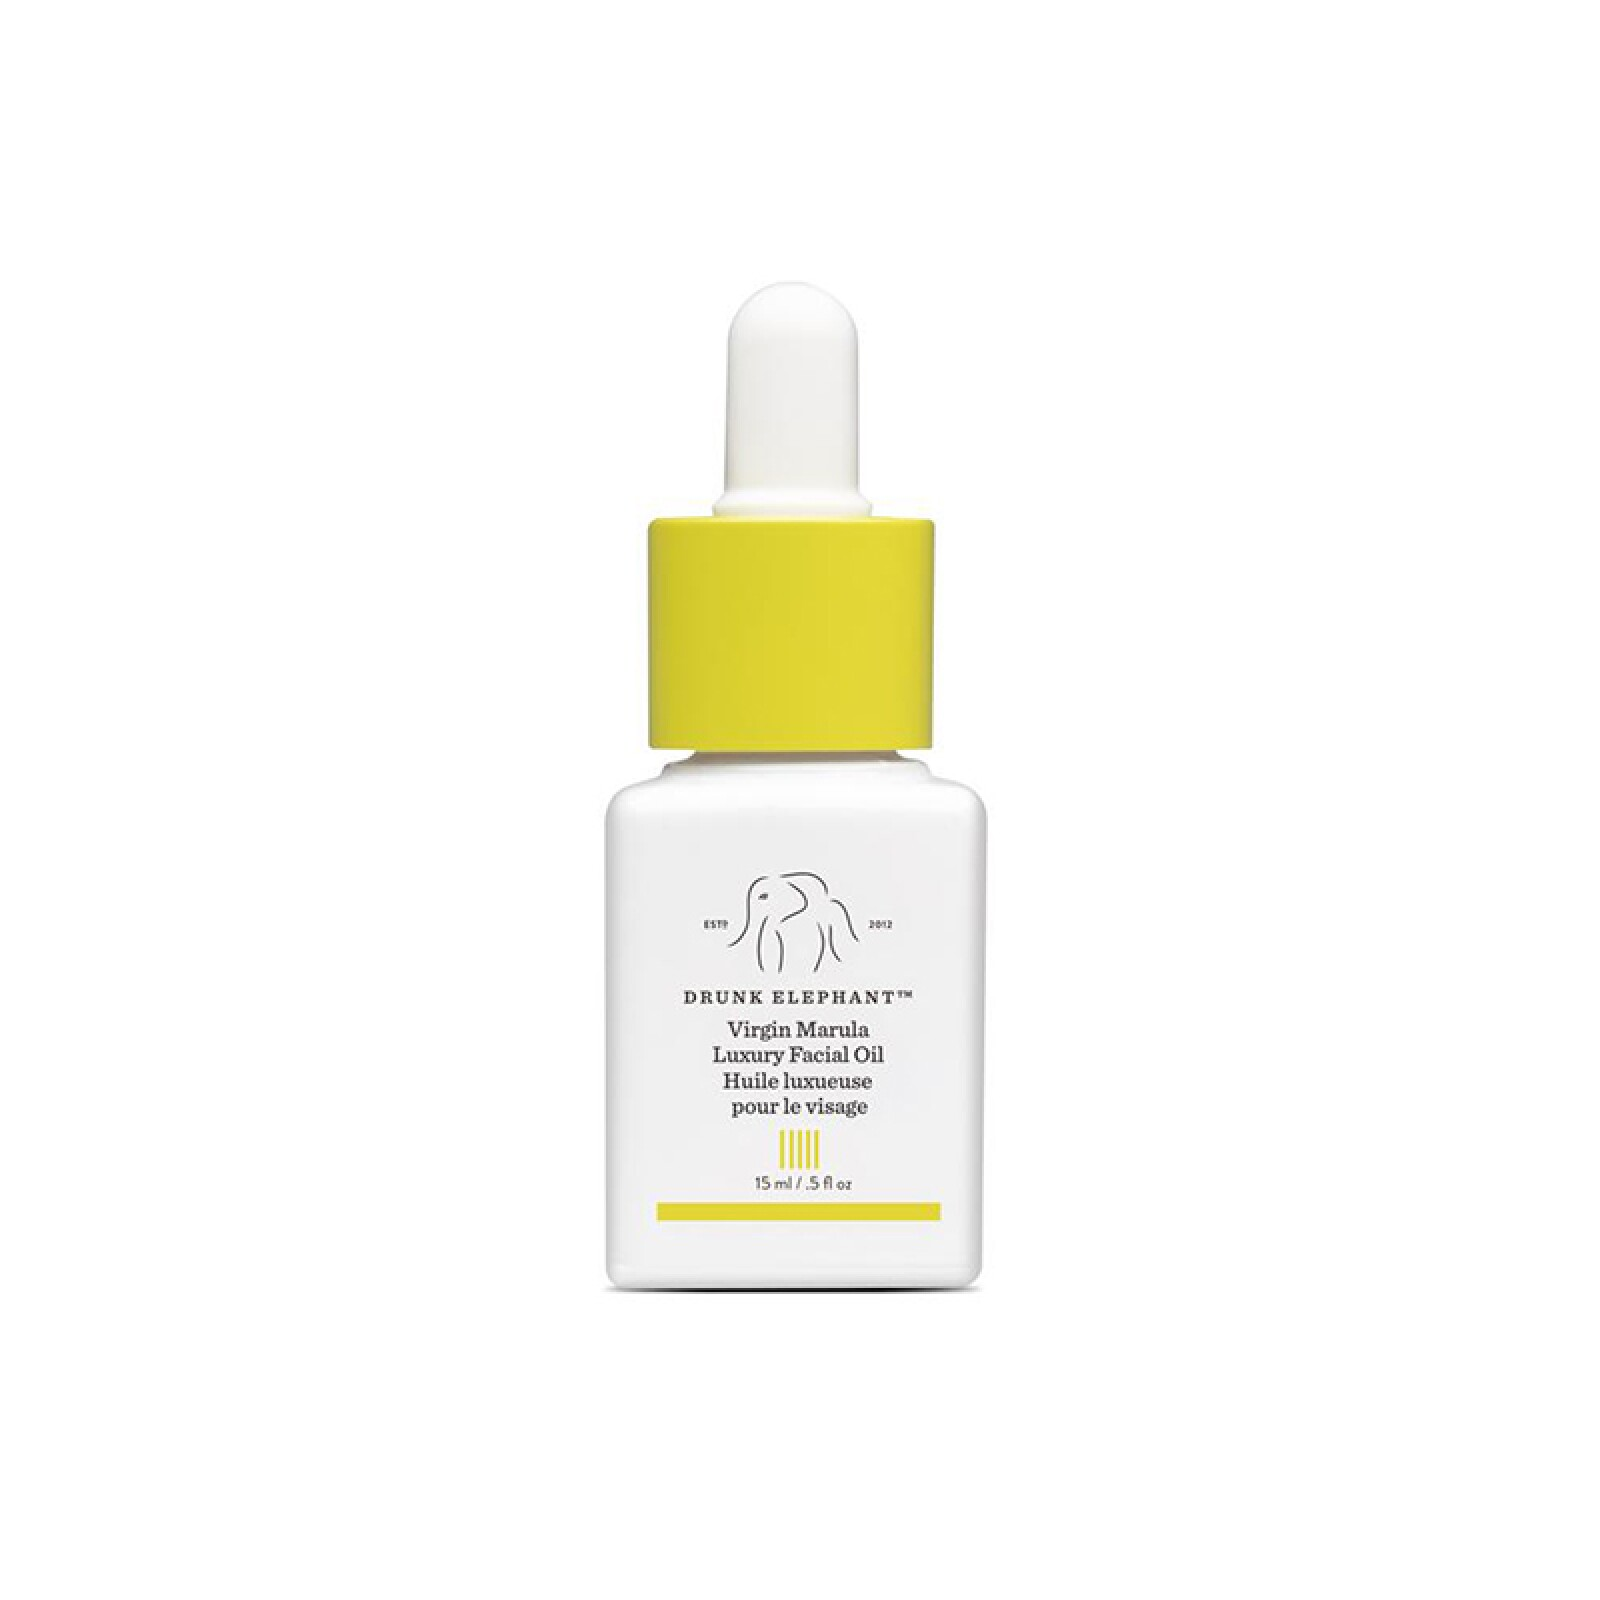 Drunk-Elephant-Virgin-Marula-Luxury-Facial-Oil.jpg